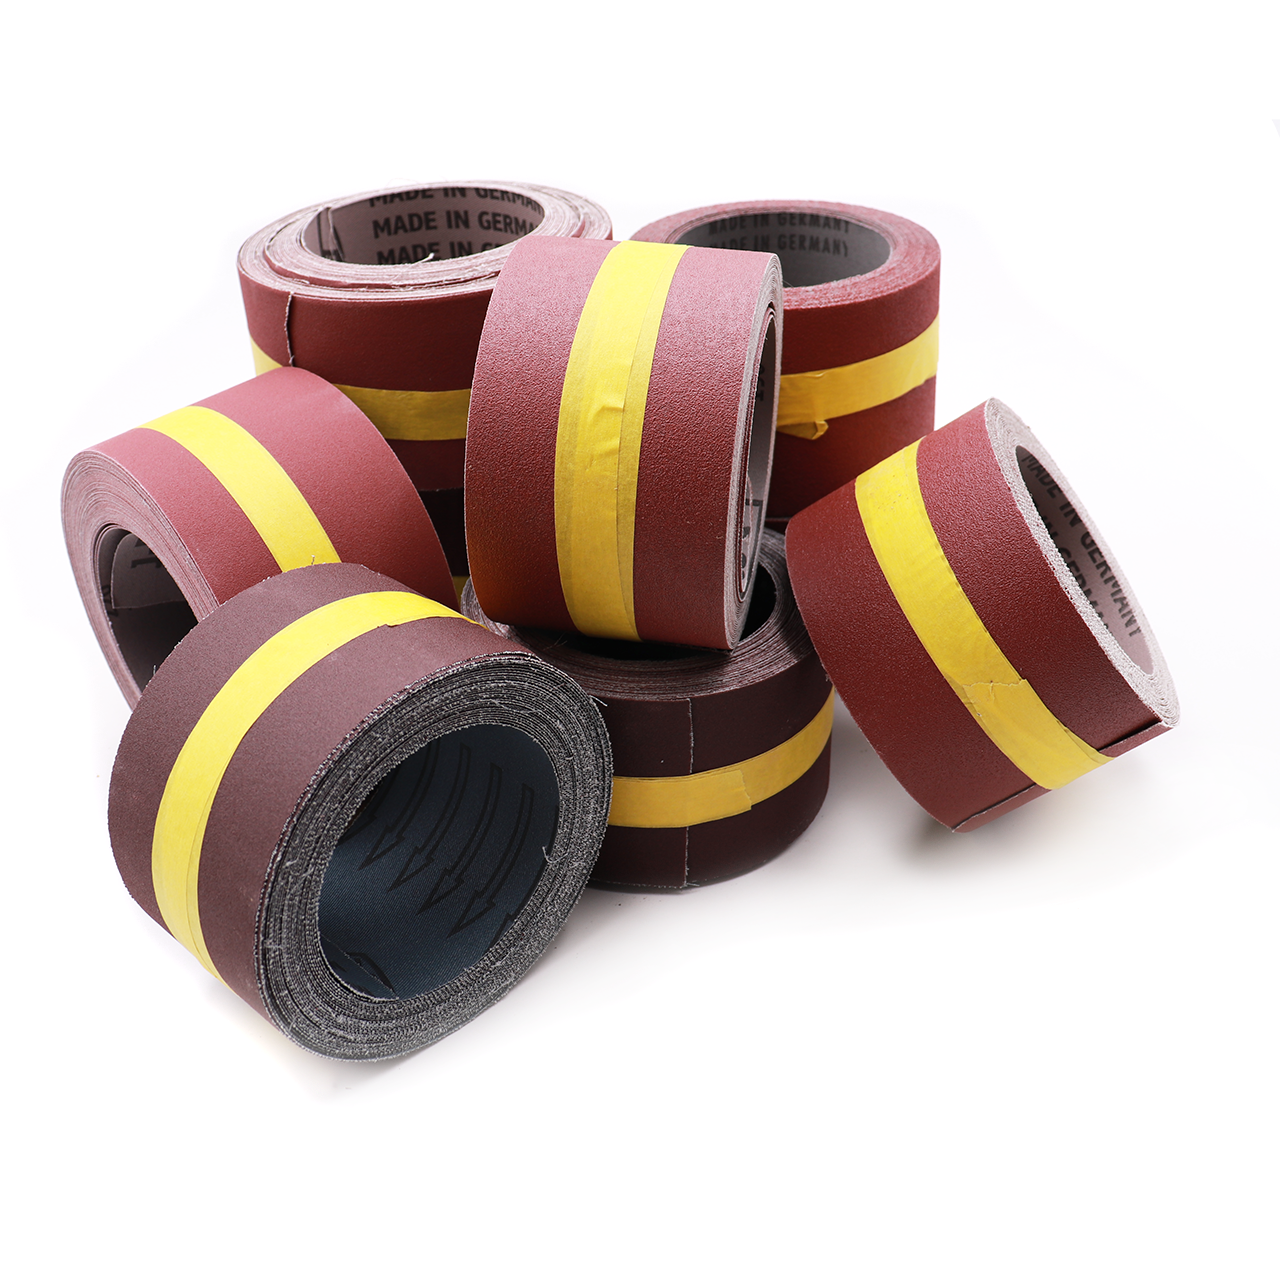 Bargain Box of End Rolls Up Close What is Inside